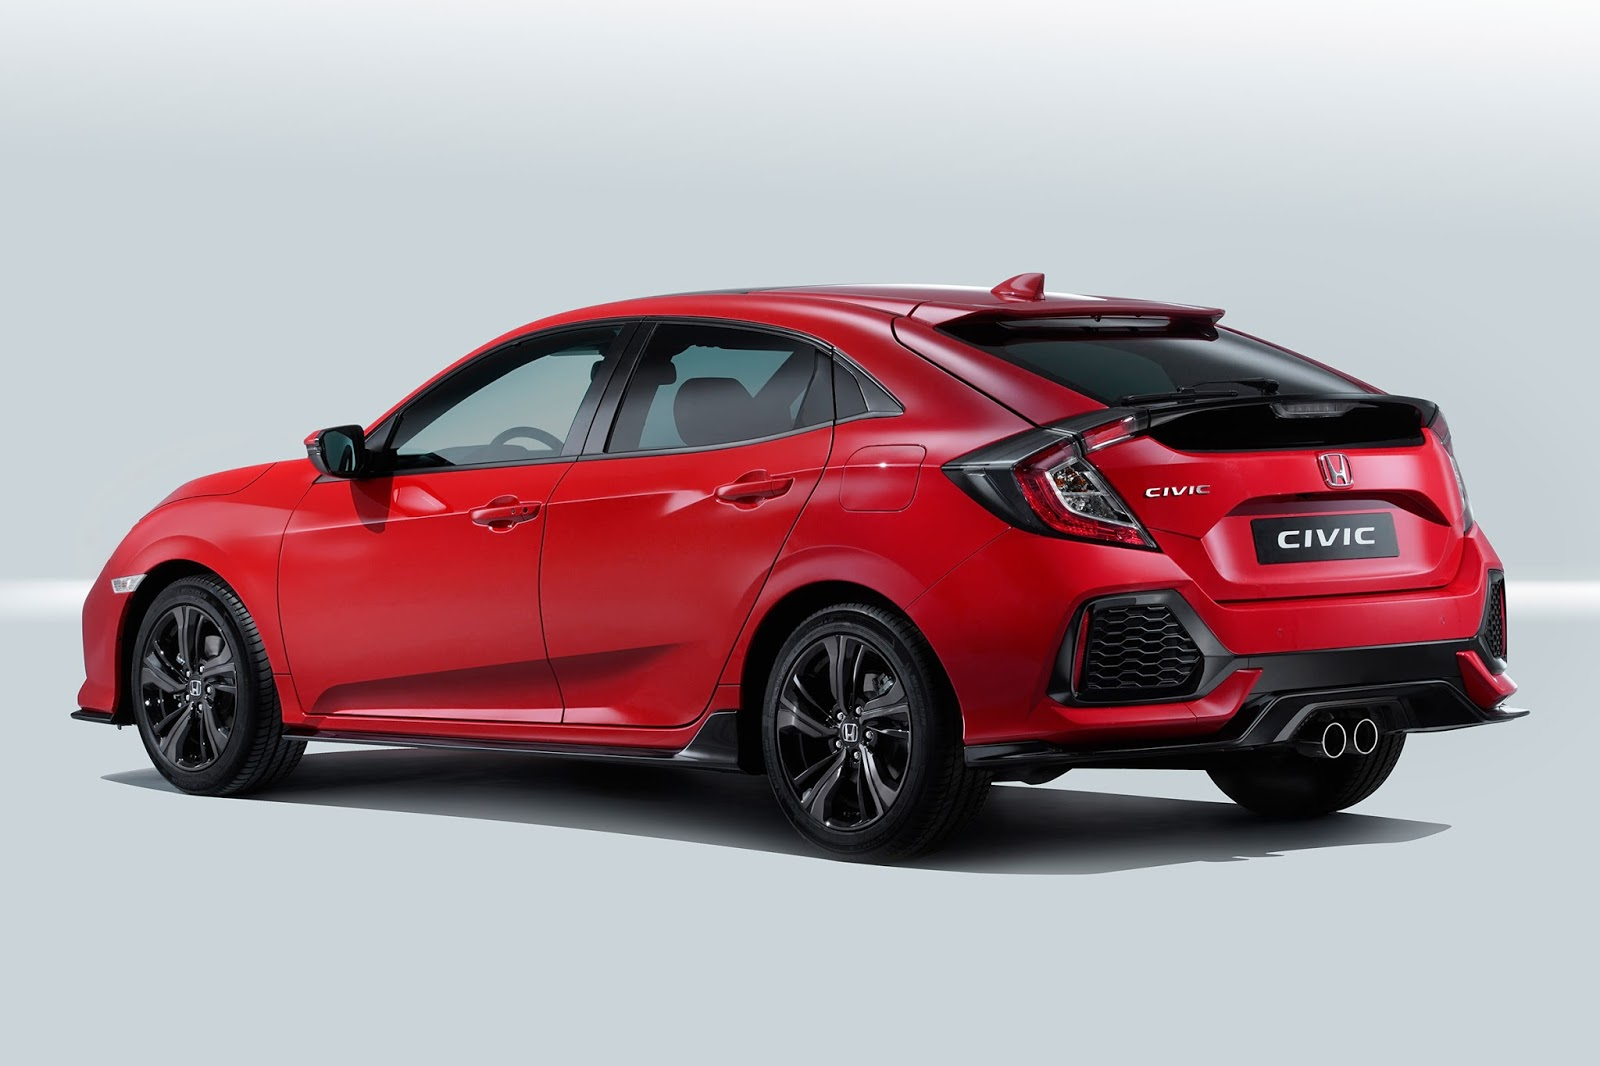 civic_hatchback-5